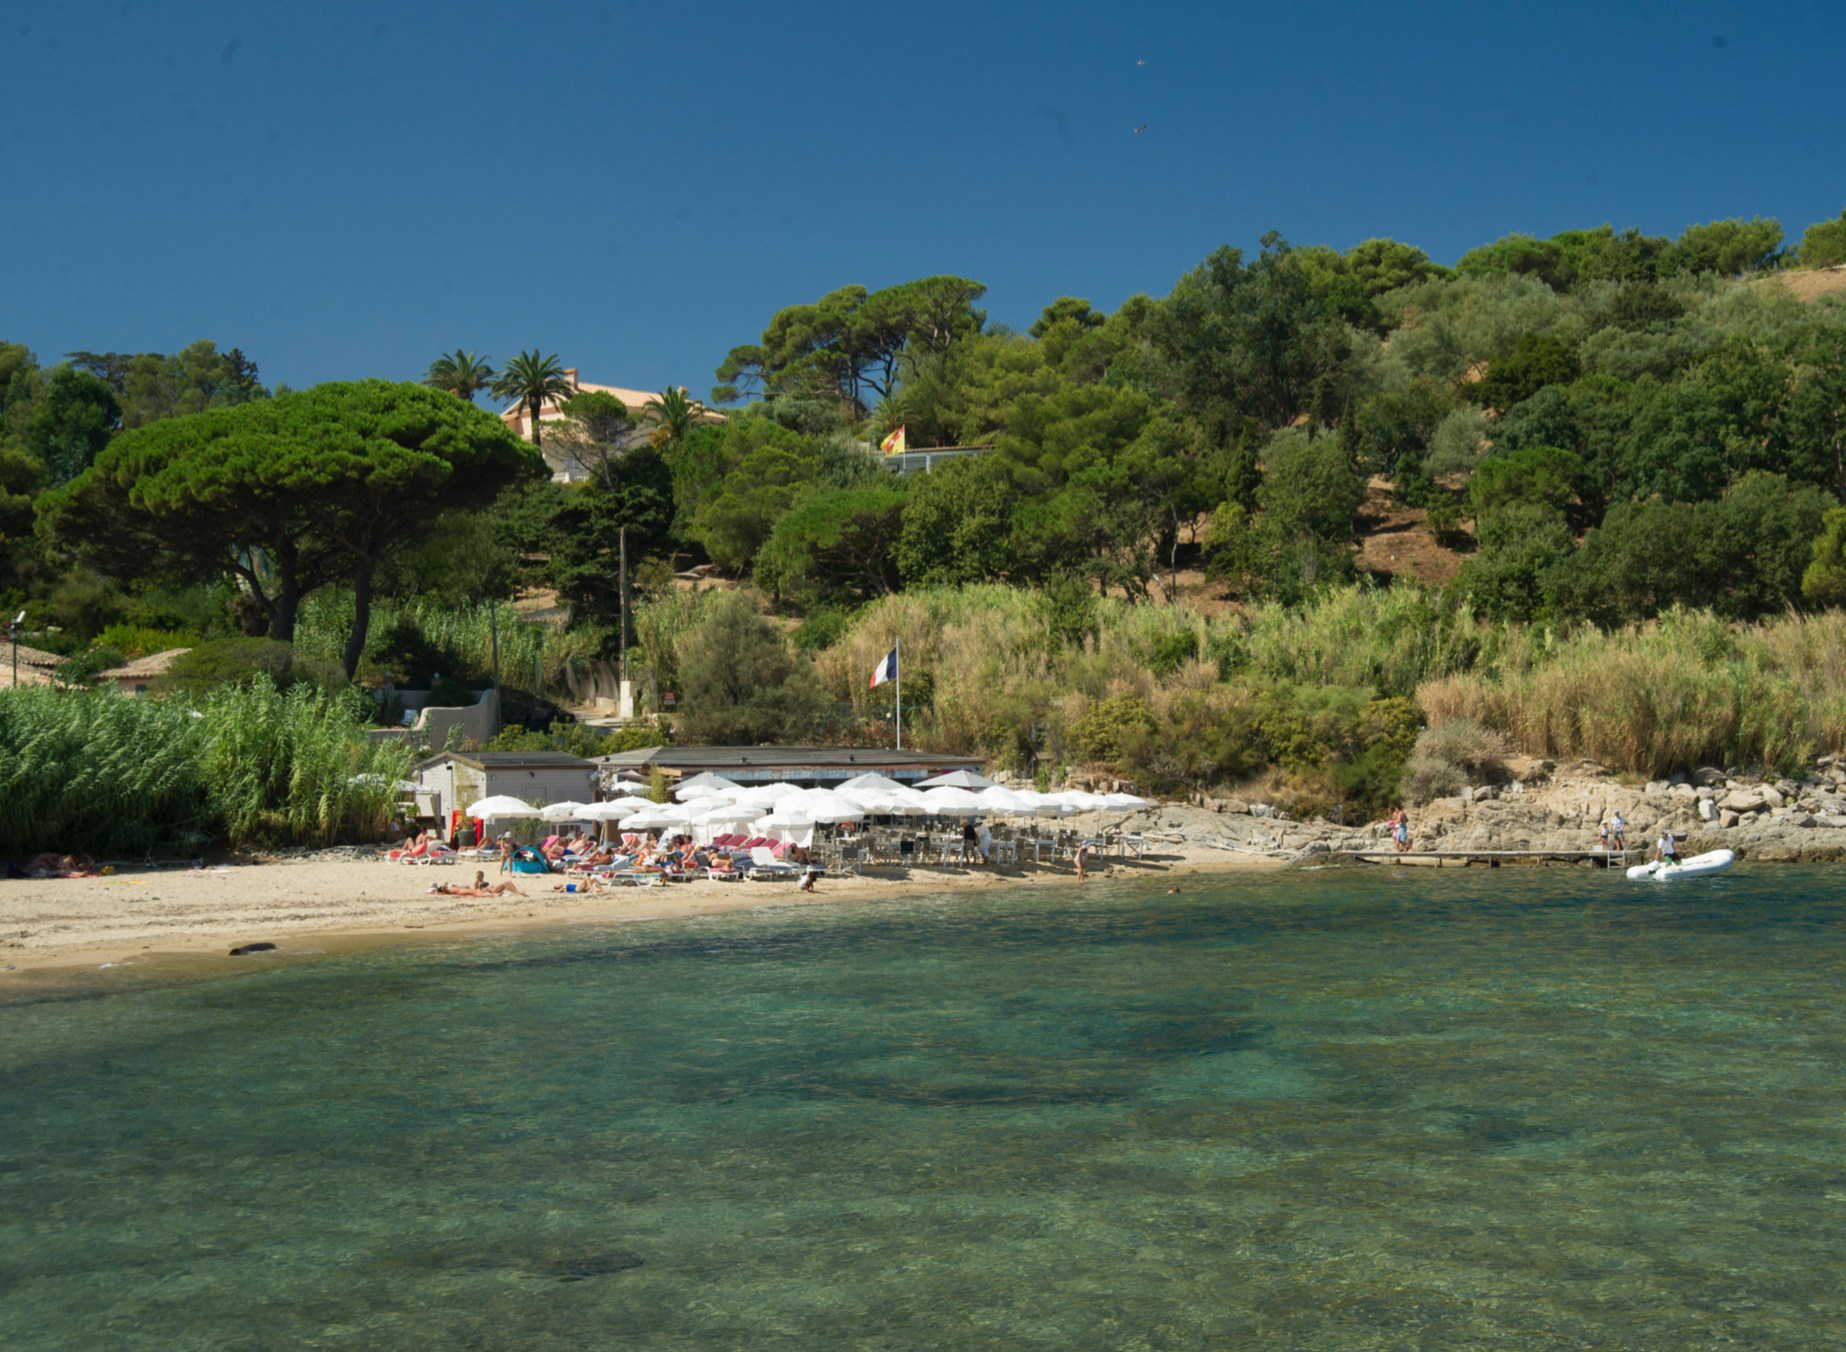 Les Graniers  One of the most beautiful and secluded beaches situated right behind the St Tropez citadel. You can access the little beach by boat or on foot and enjoy a sunny lunch on the beach. This is one that I mentioned in my St Tropez book many times and since the book it has changed hands and has a Spanish fusion running through the food. The cuisine is actually better than before so you must check it out for a dreamy lunch!  Plage des Graniers Saint-Tropez 04 94 97 38 50   http://www.plagedesgraniers.com